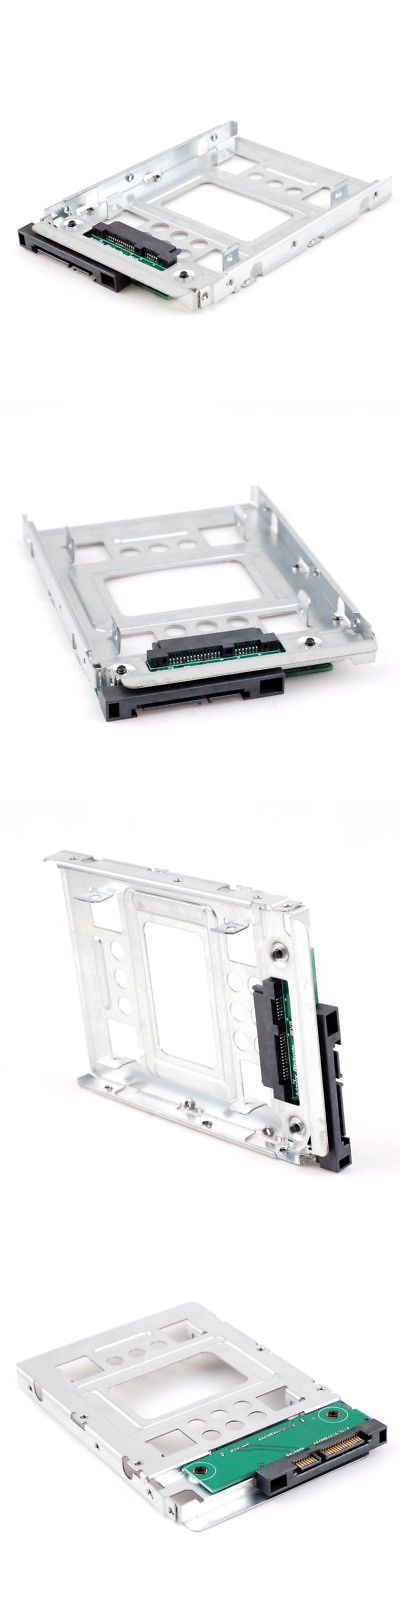 "3.5/"" SAS SATA Hard Drive Tray Caddy w//4 Screws For Dell PowerEdge R710 US Seller"